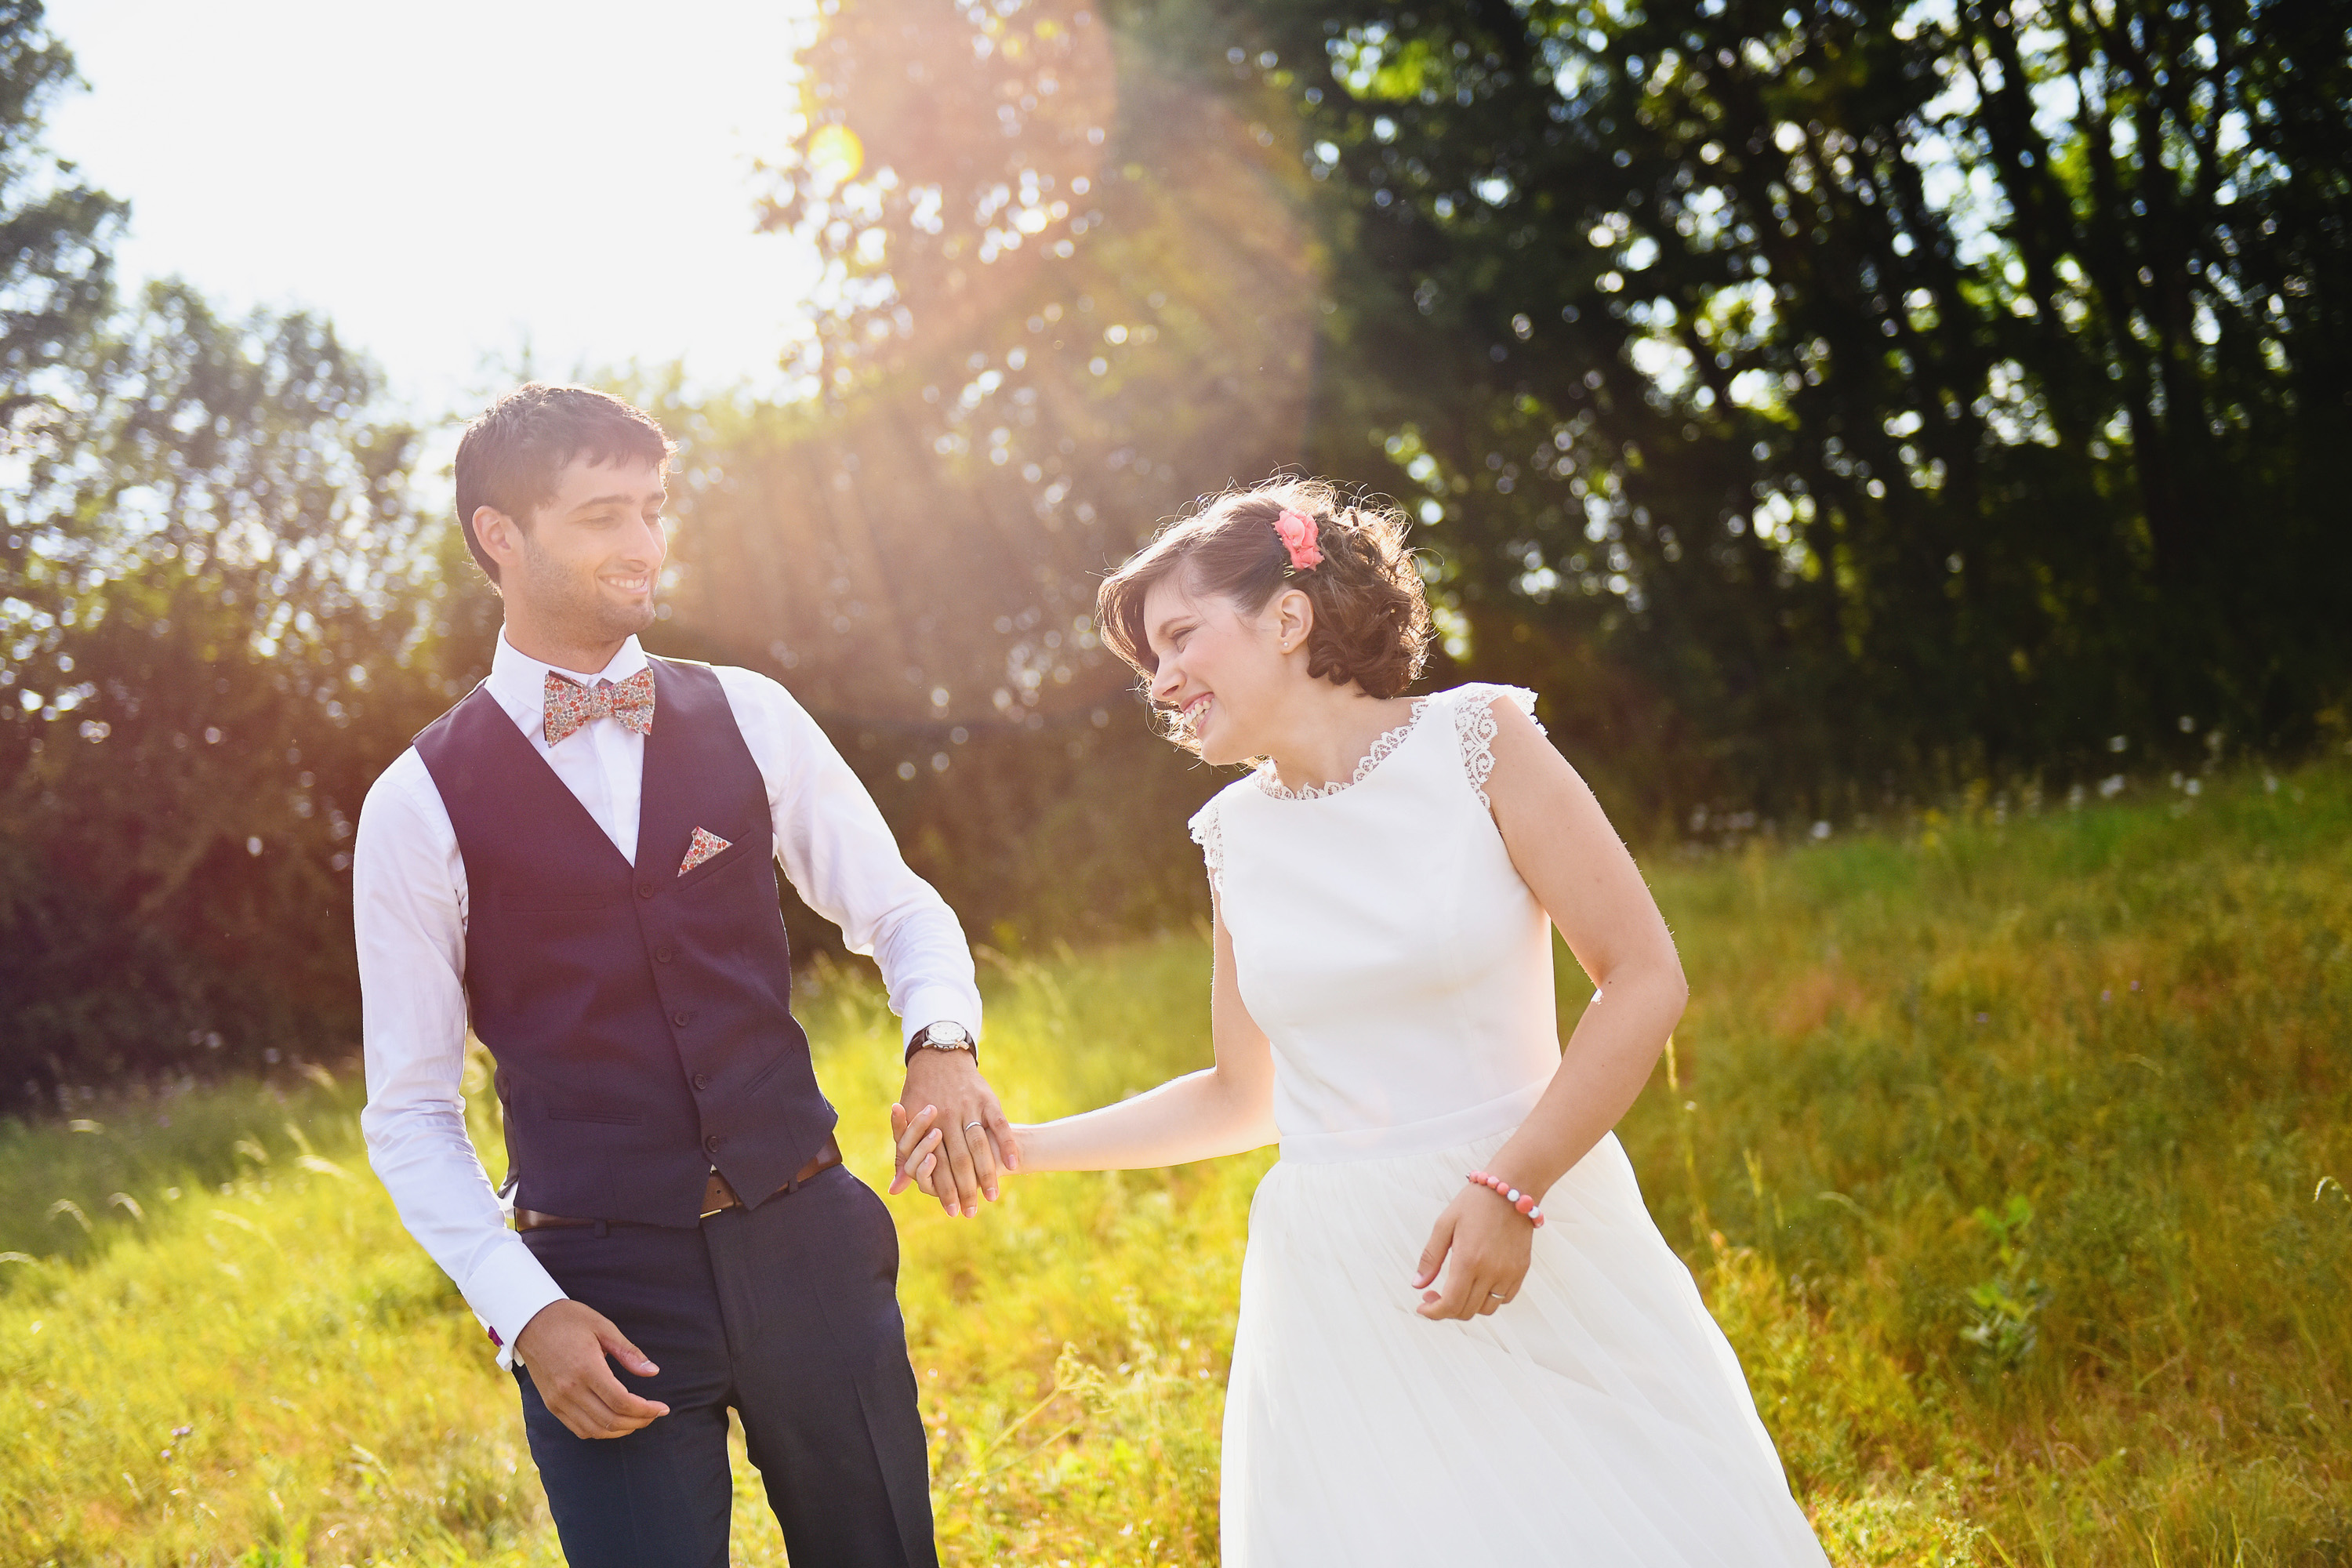 mariage_domaine_bouloy_yonne_89_photographie_clemence_dubois-500